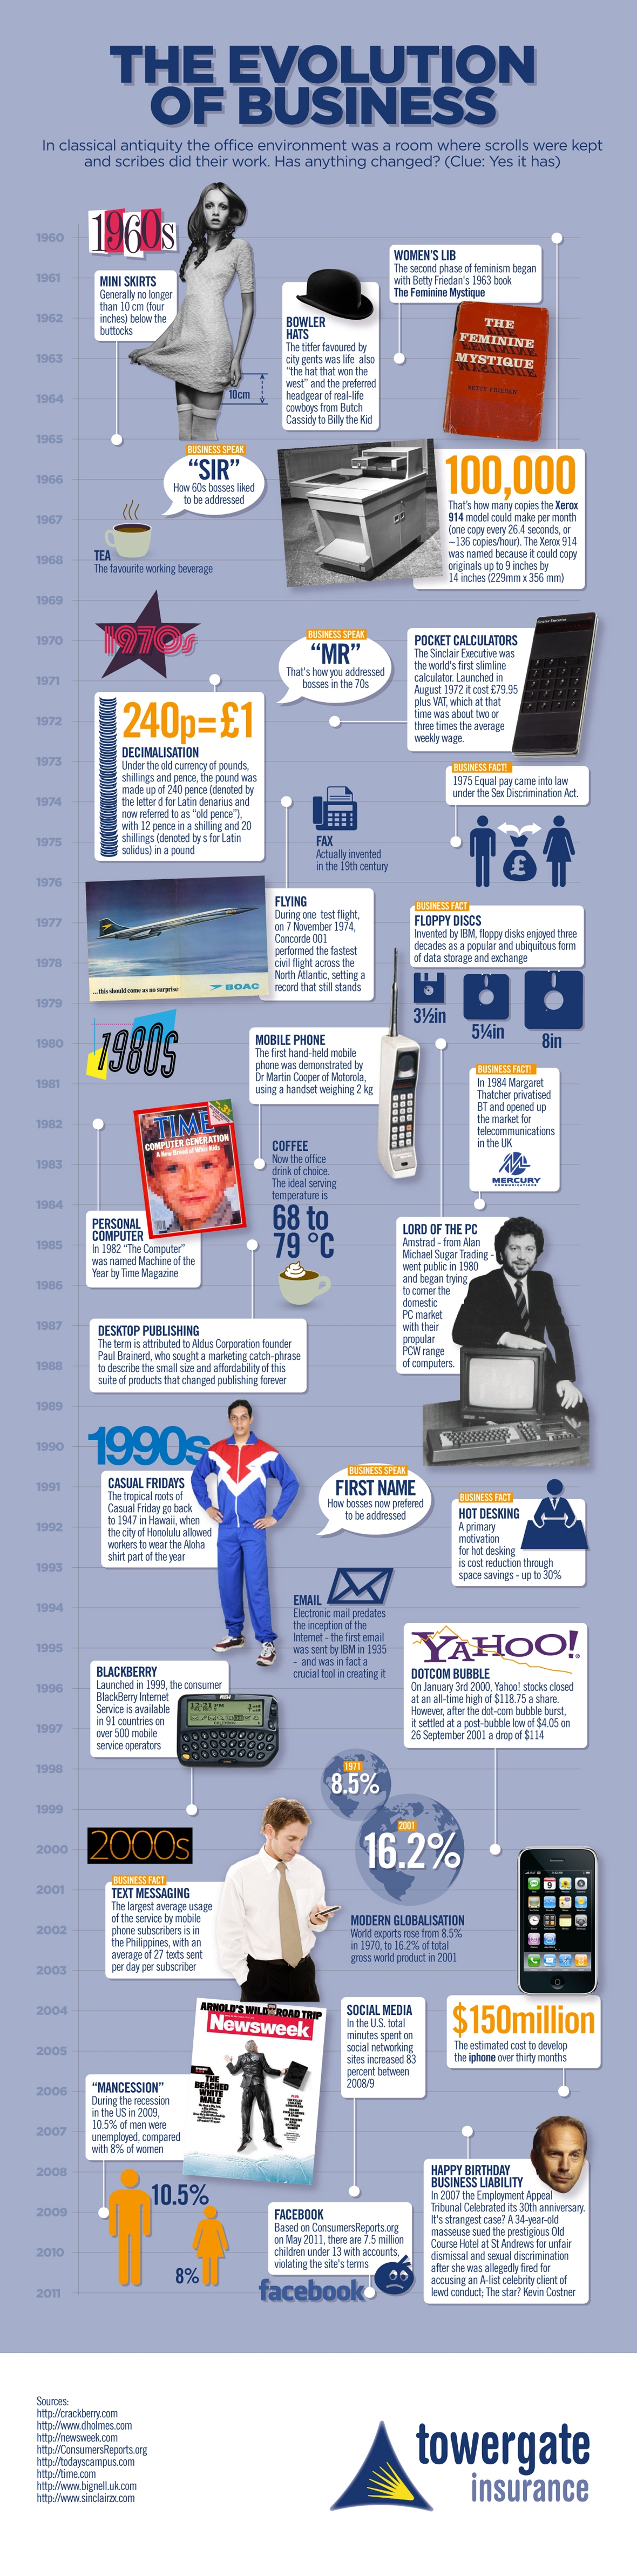 Infographic: The evolution of business